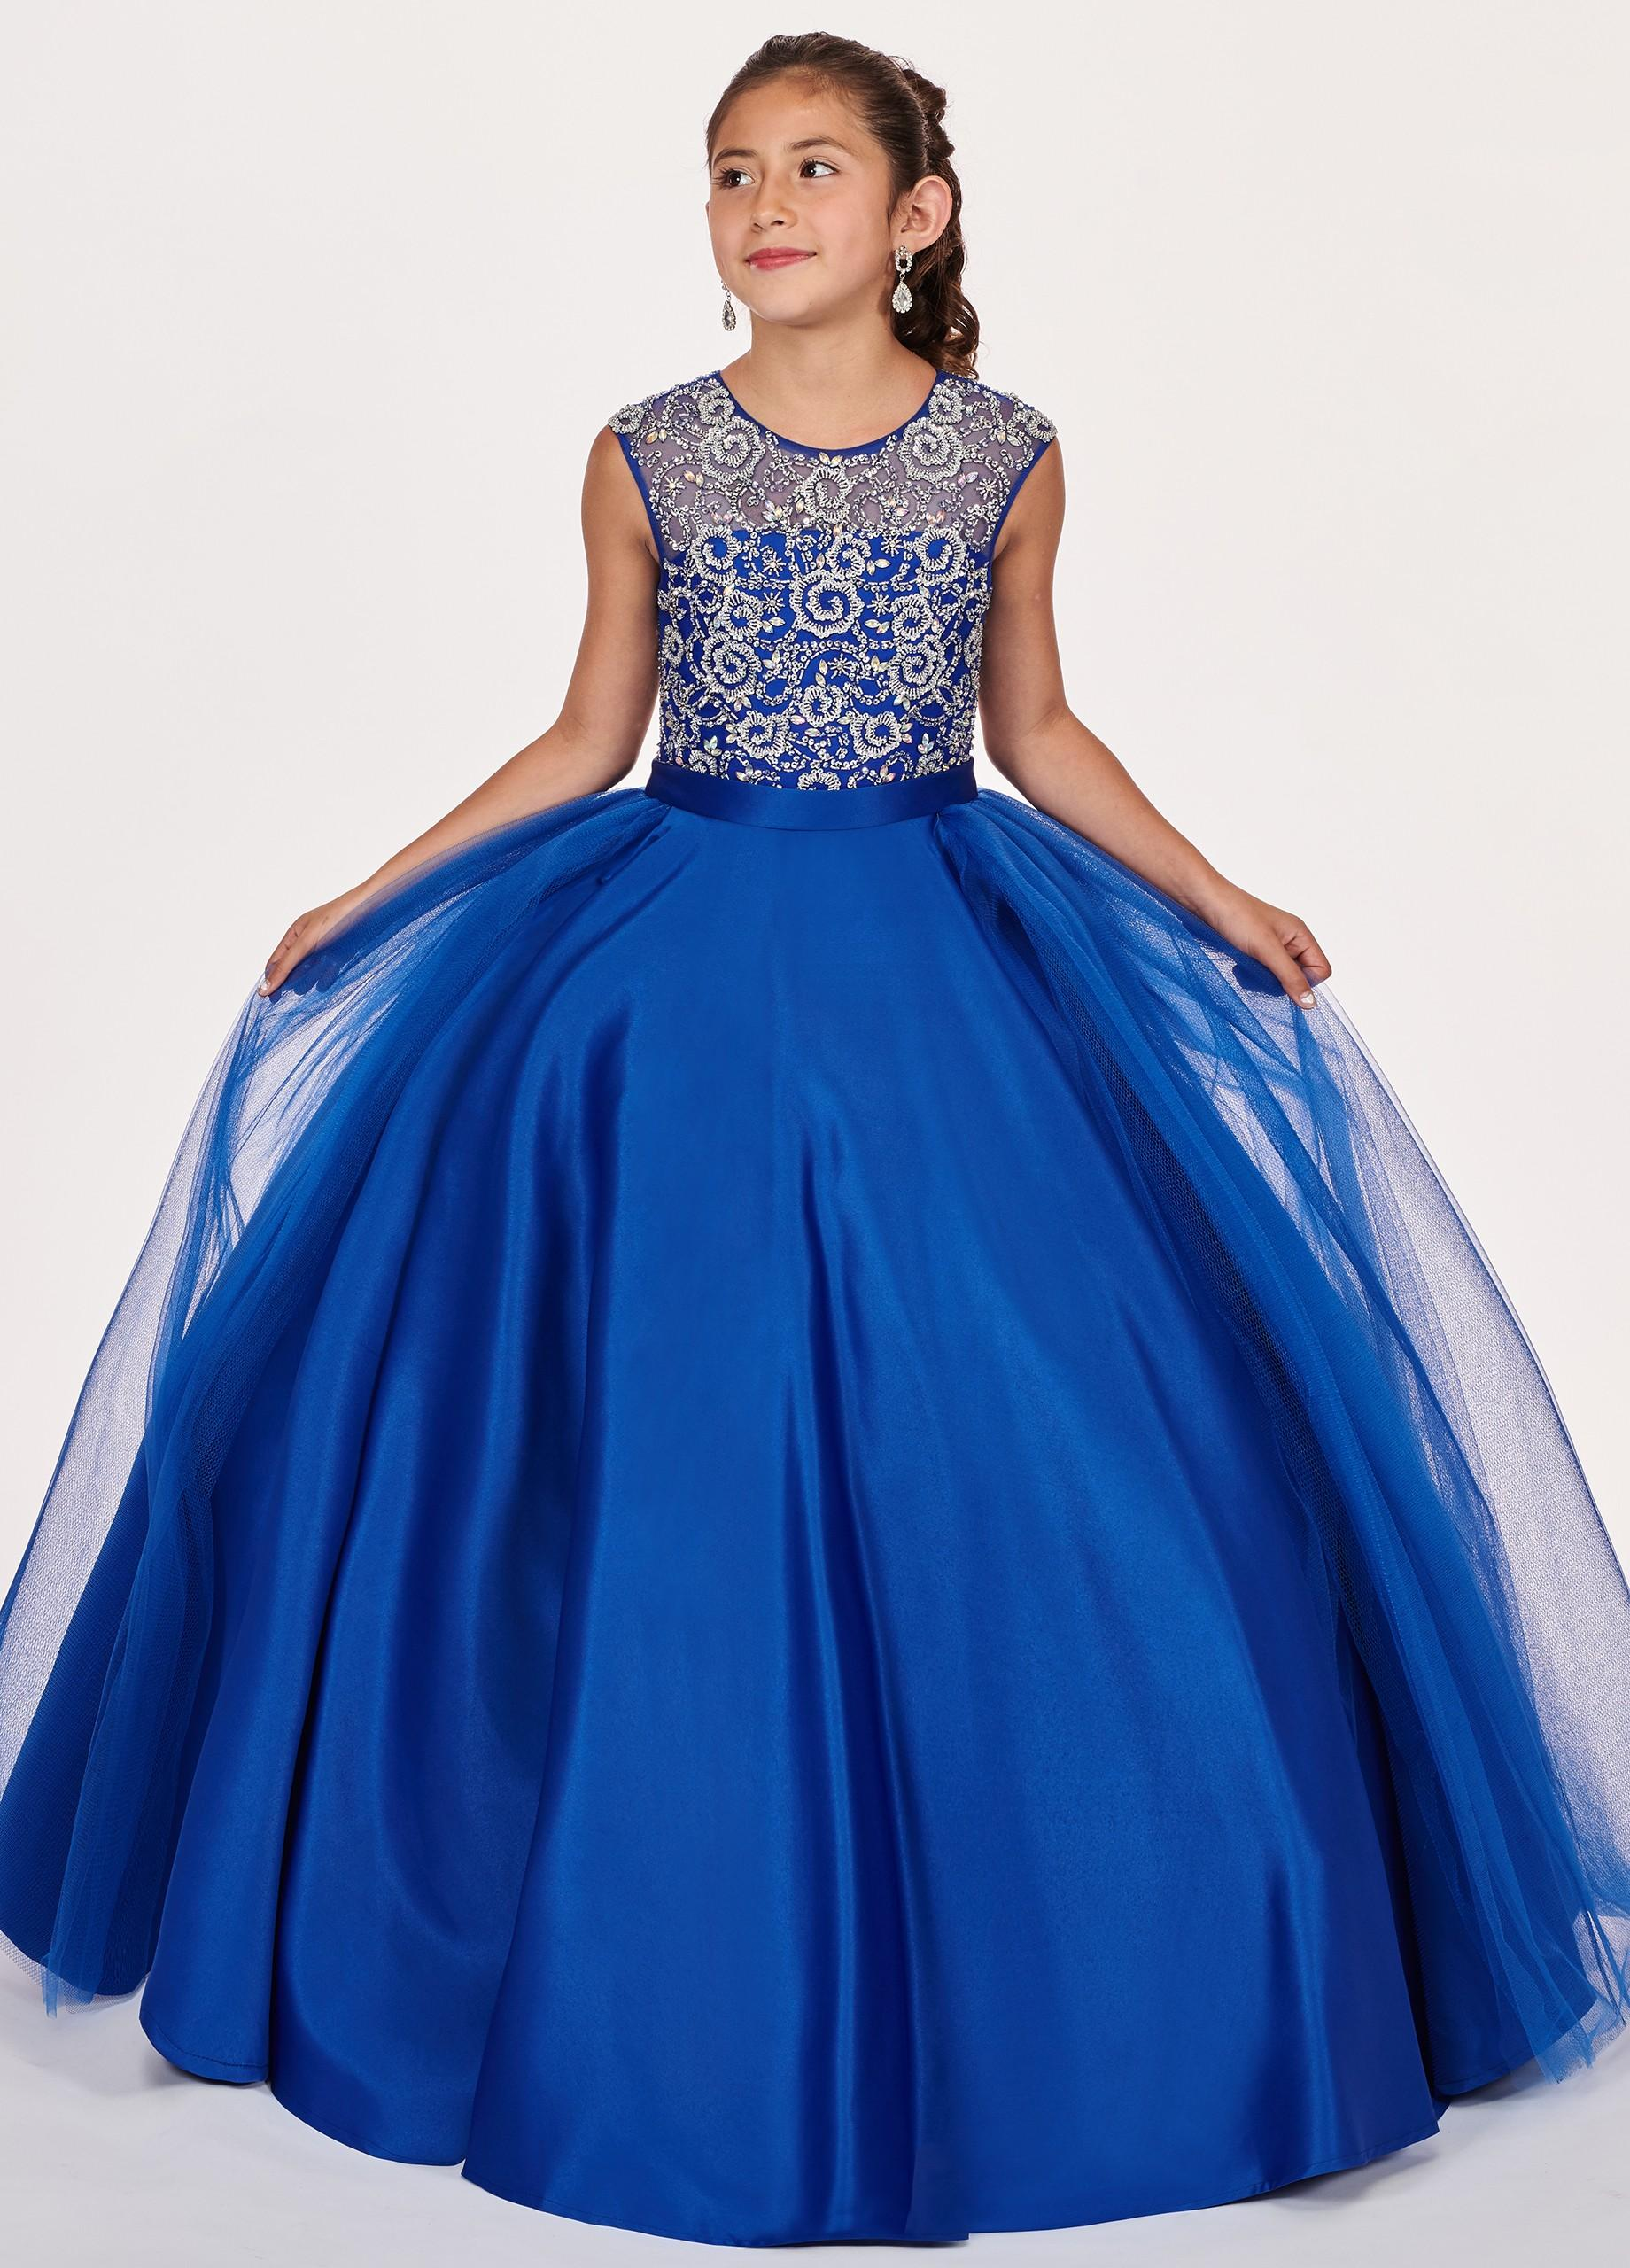 Hot Sale Royal Blue Girls Pageant Dresses 2020 Sheer Neck Hollow Back Satin Ball Gowns Beading Sequin Prom Party Dress For Kids Girls